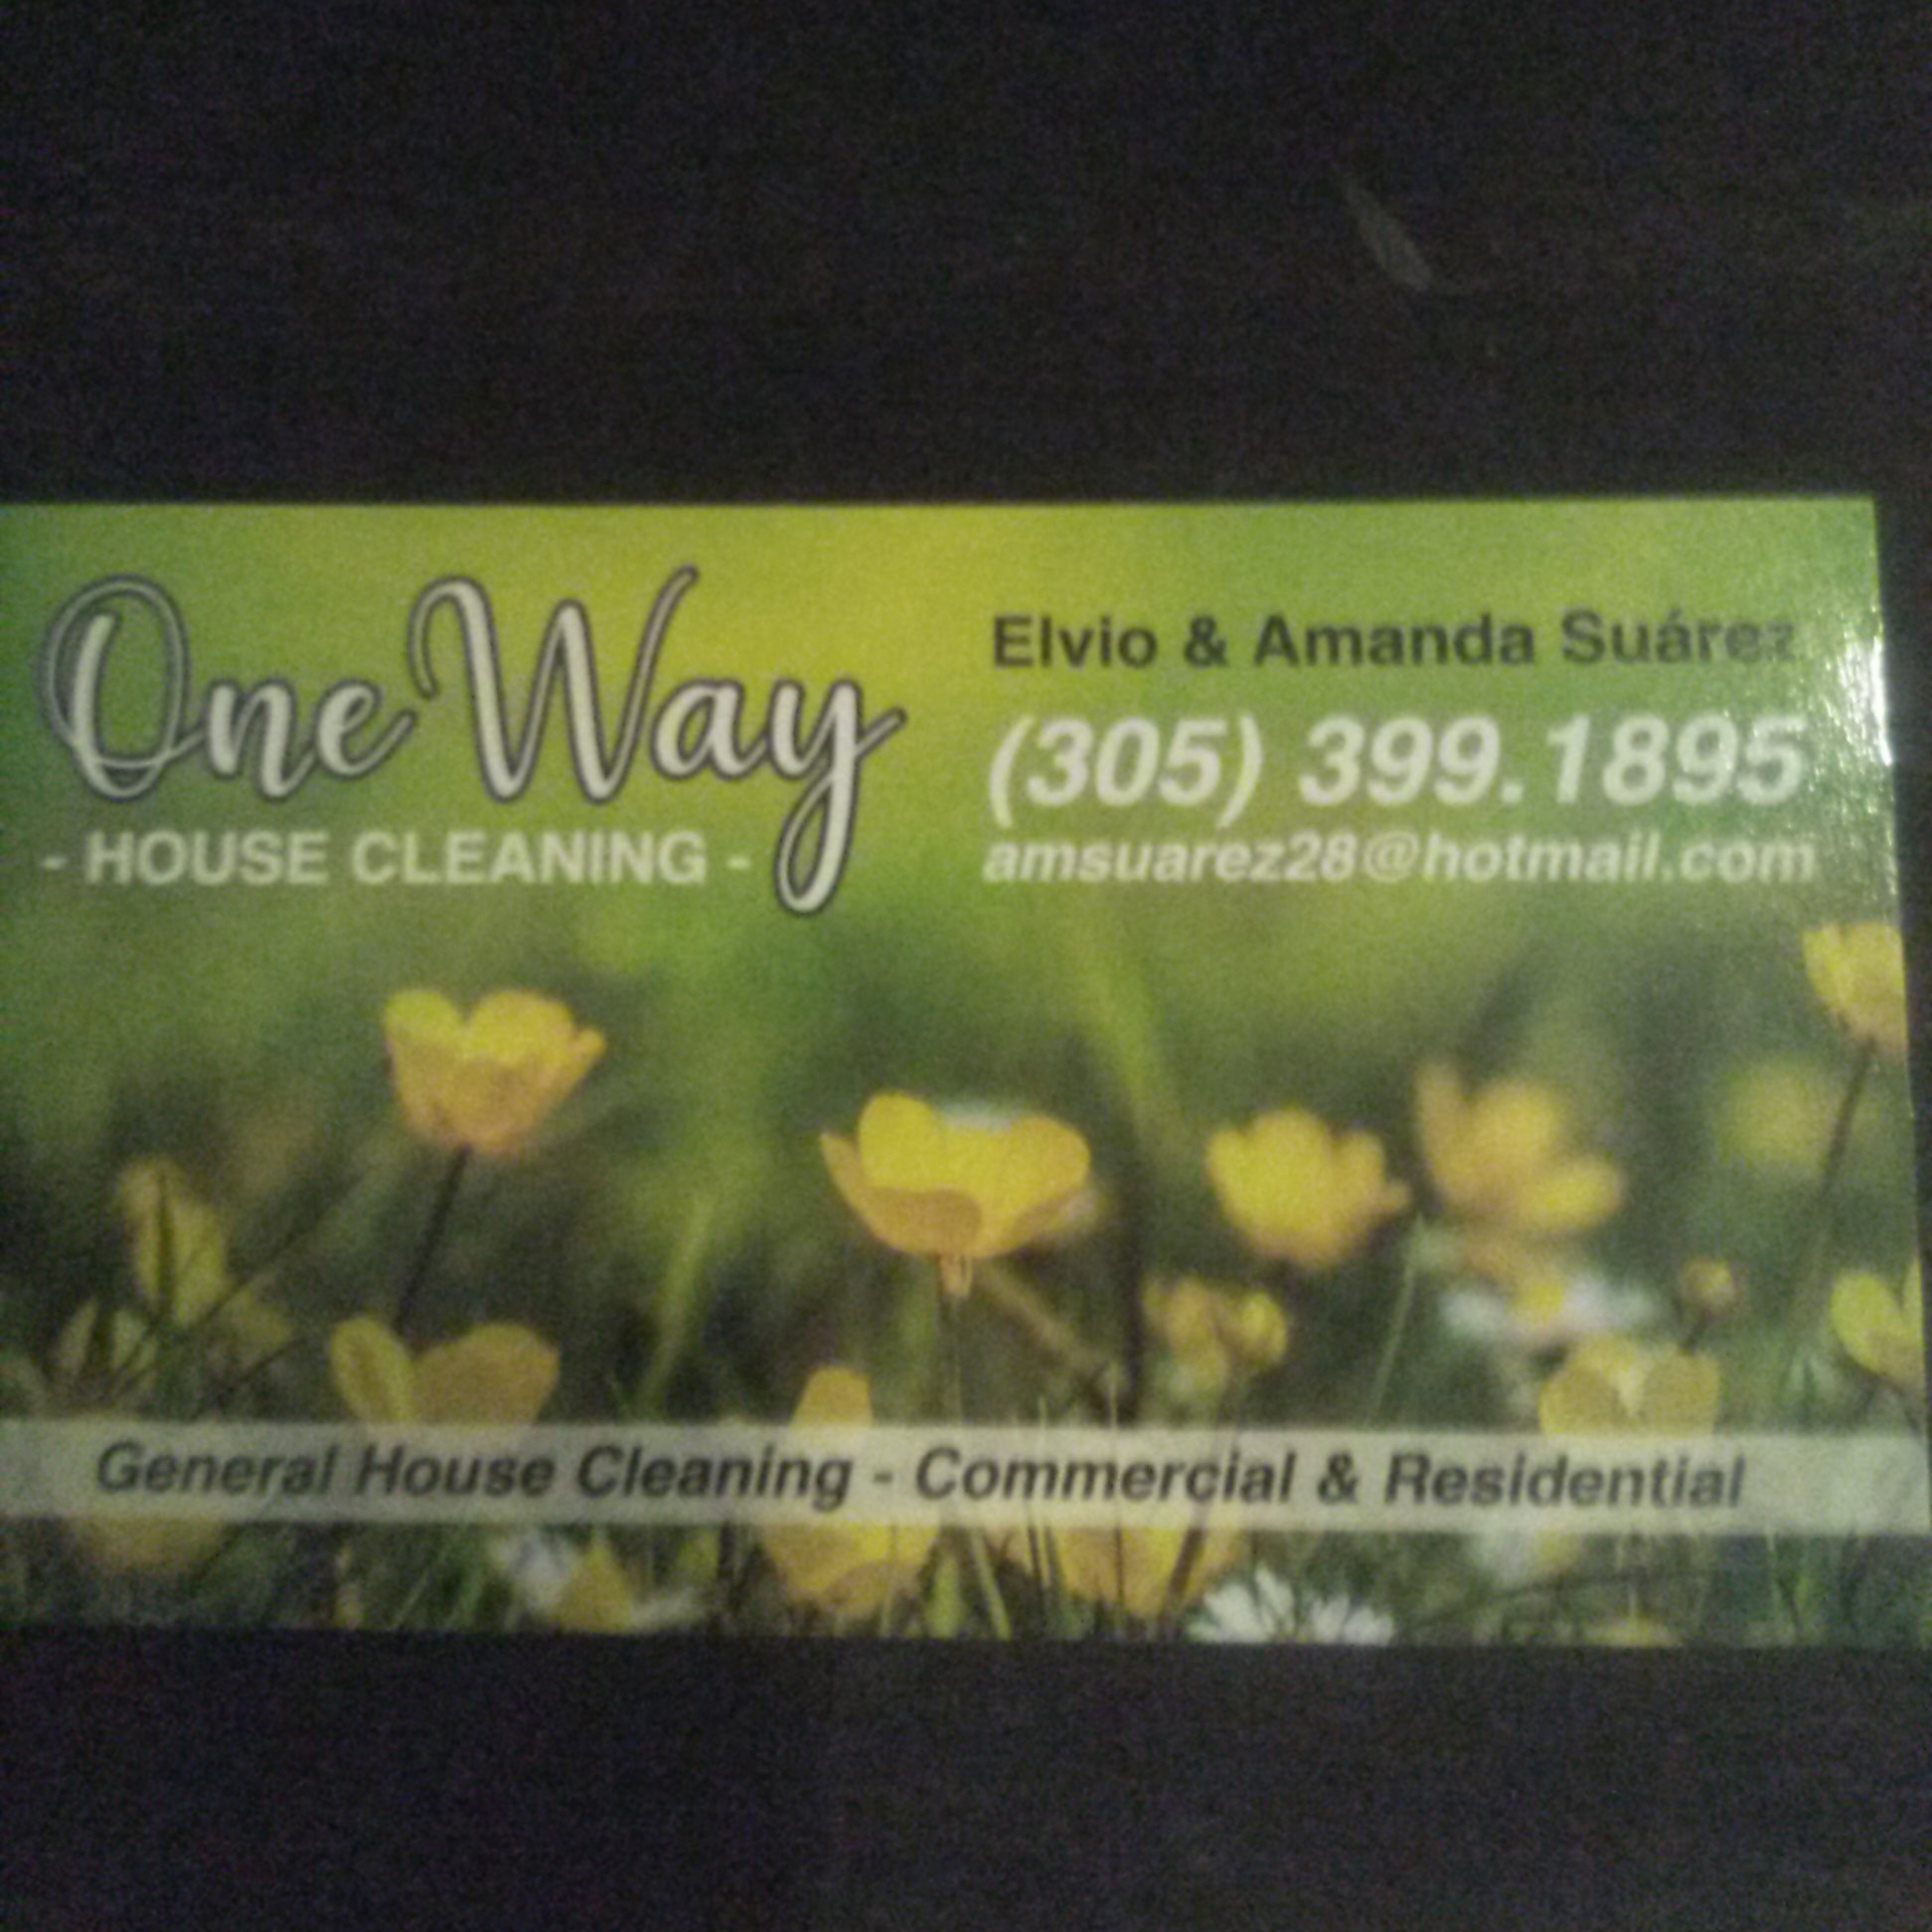 One way house cleaning